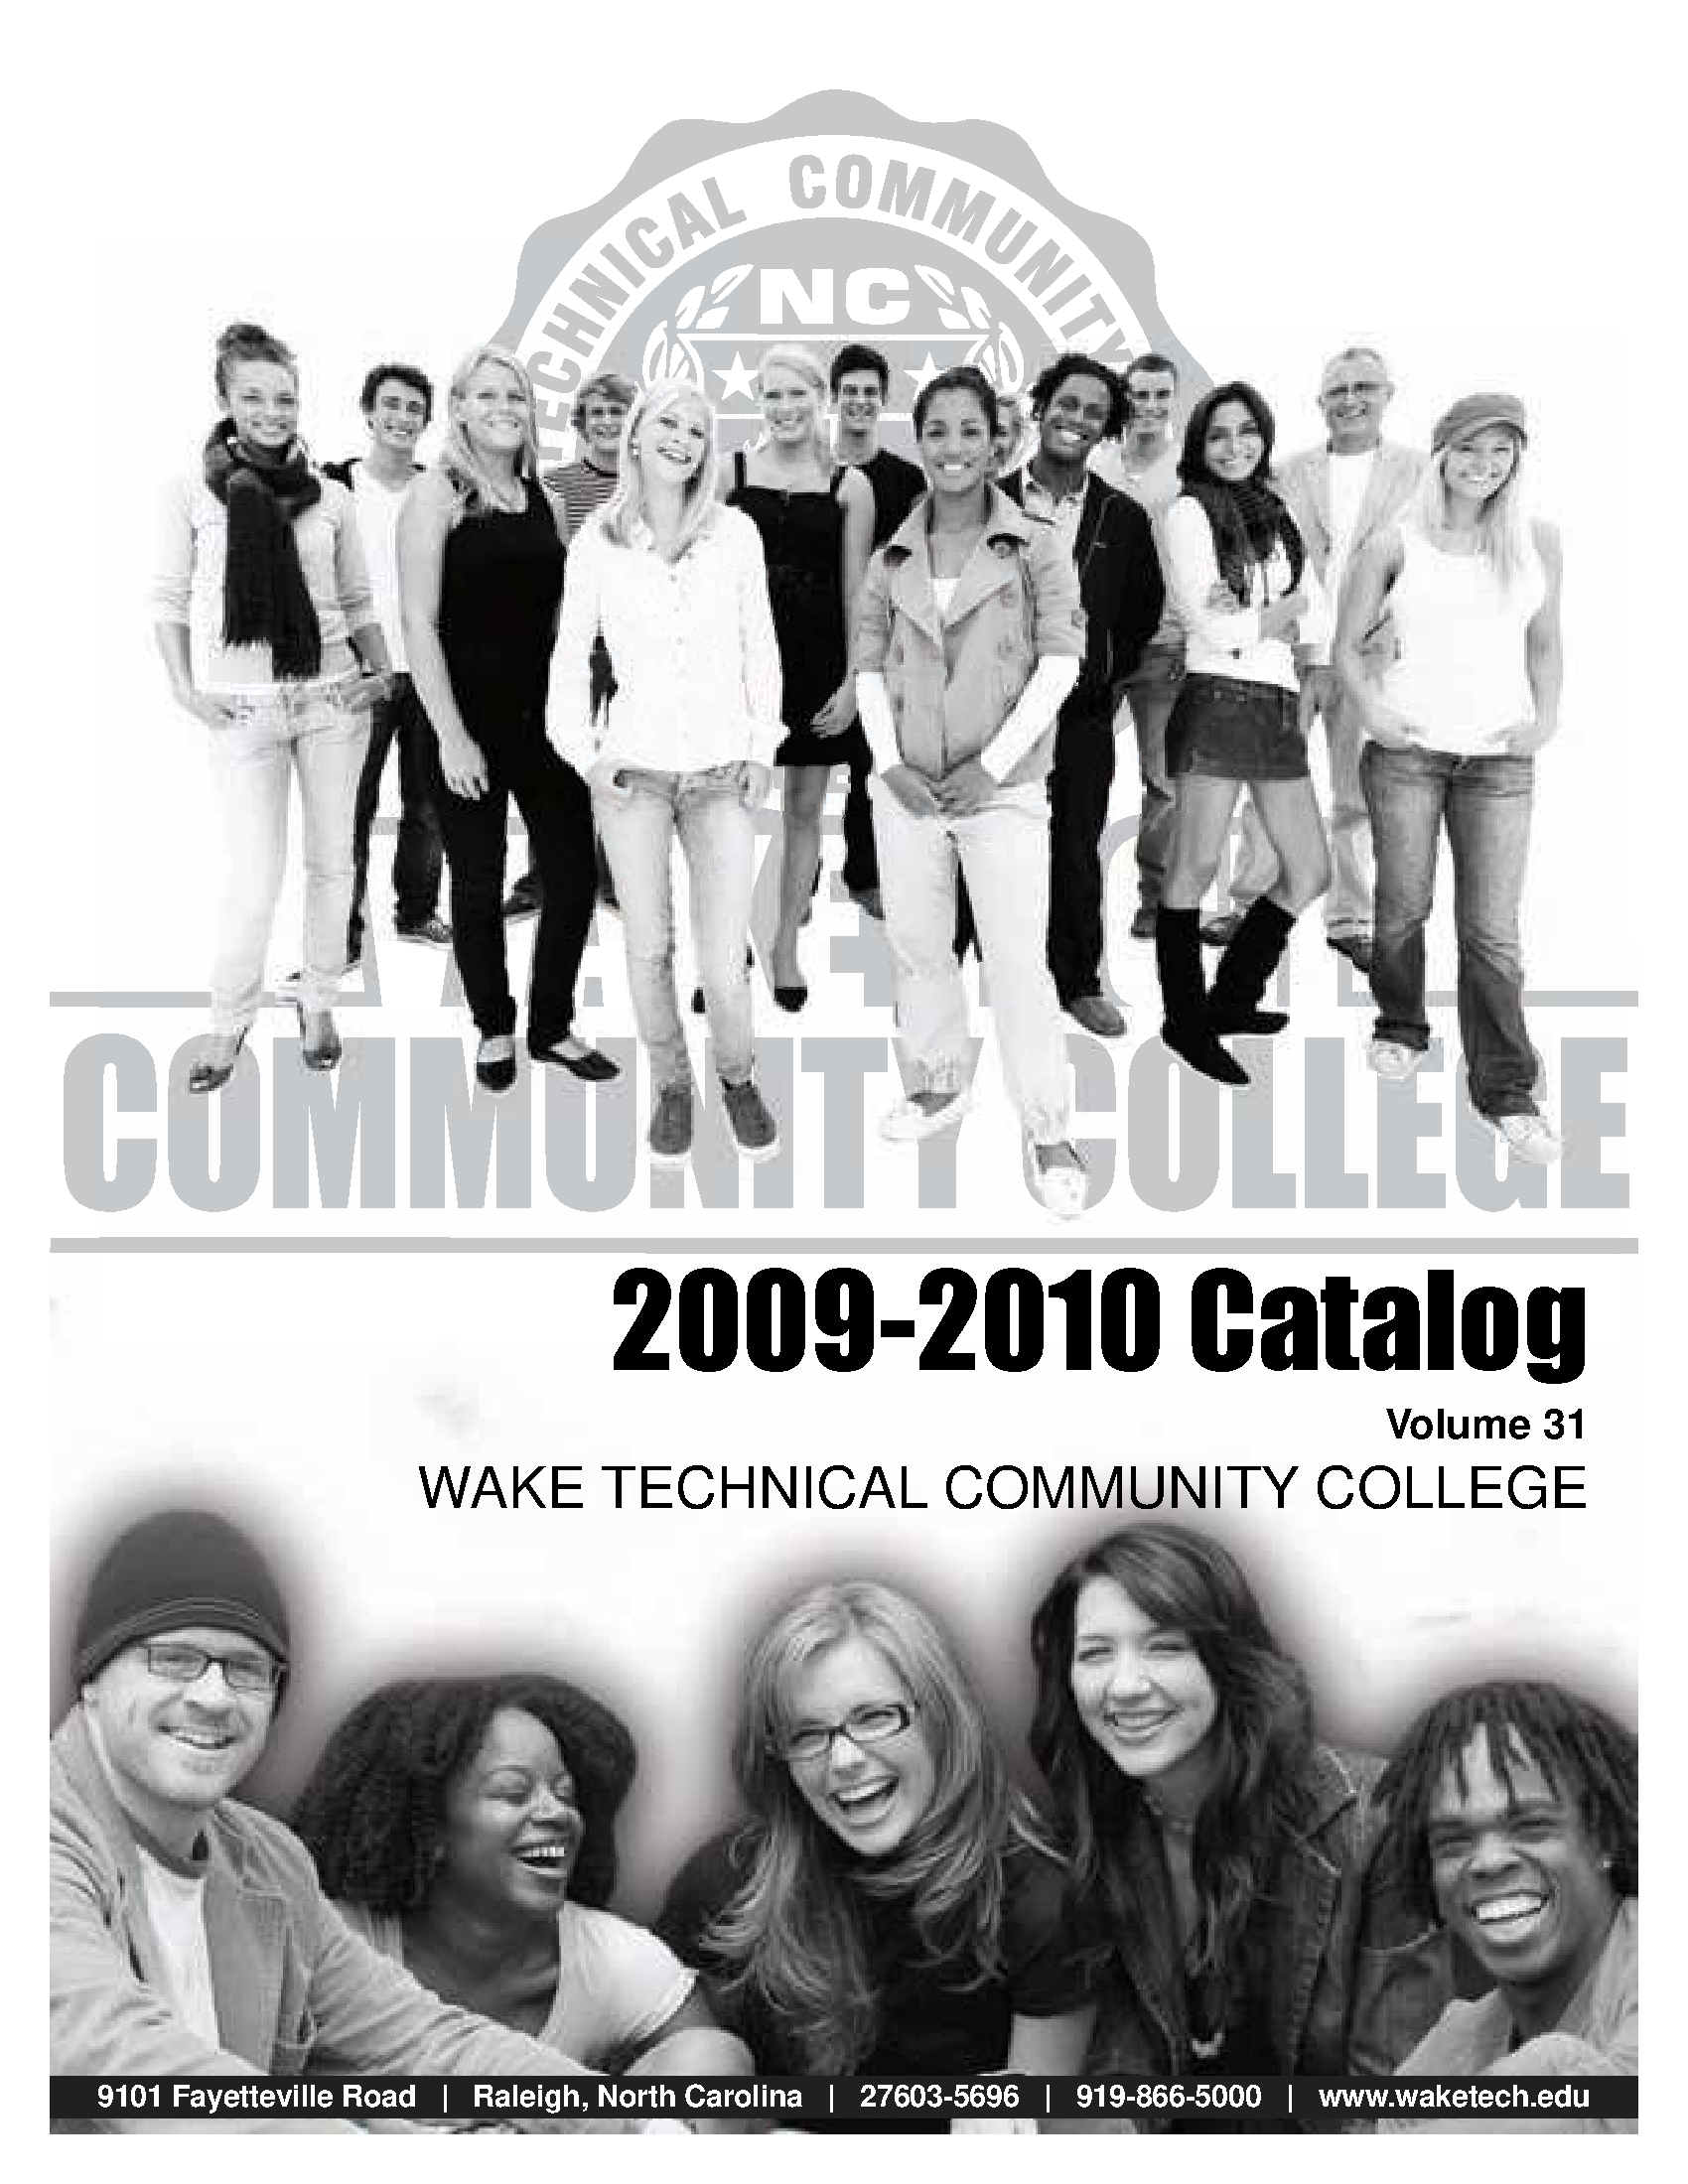 Wake Technical Community College Catalog 2009 2010 State Publications Ii North Carolina Digital Collections